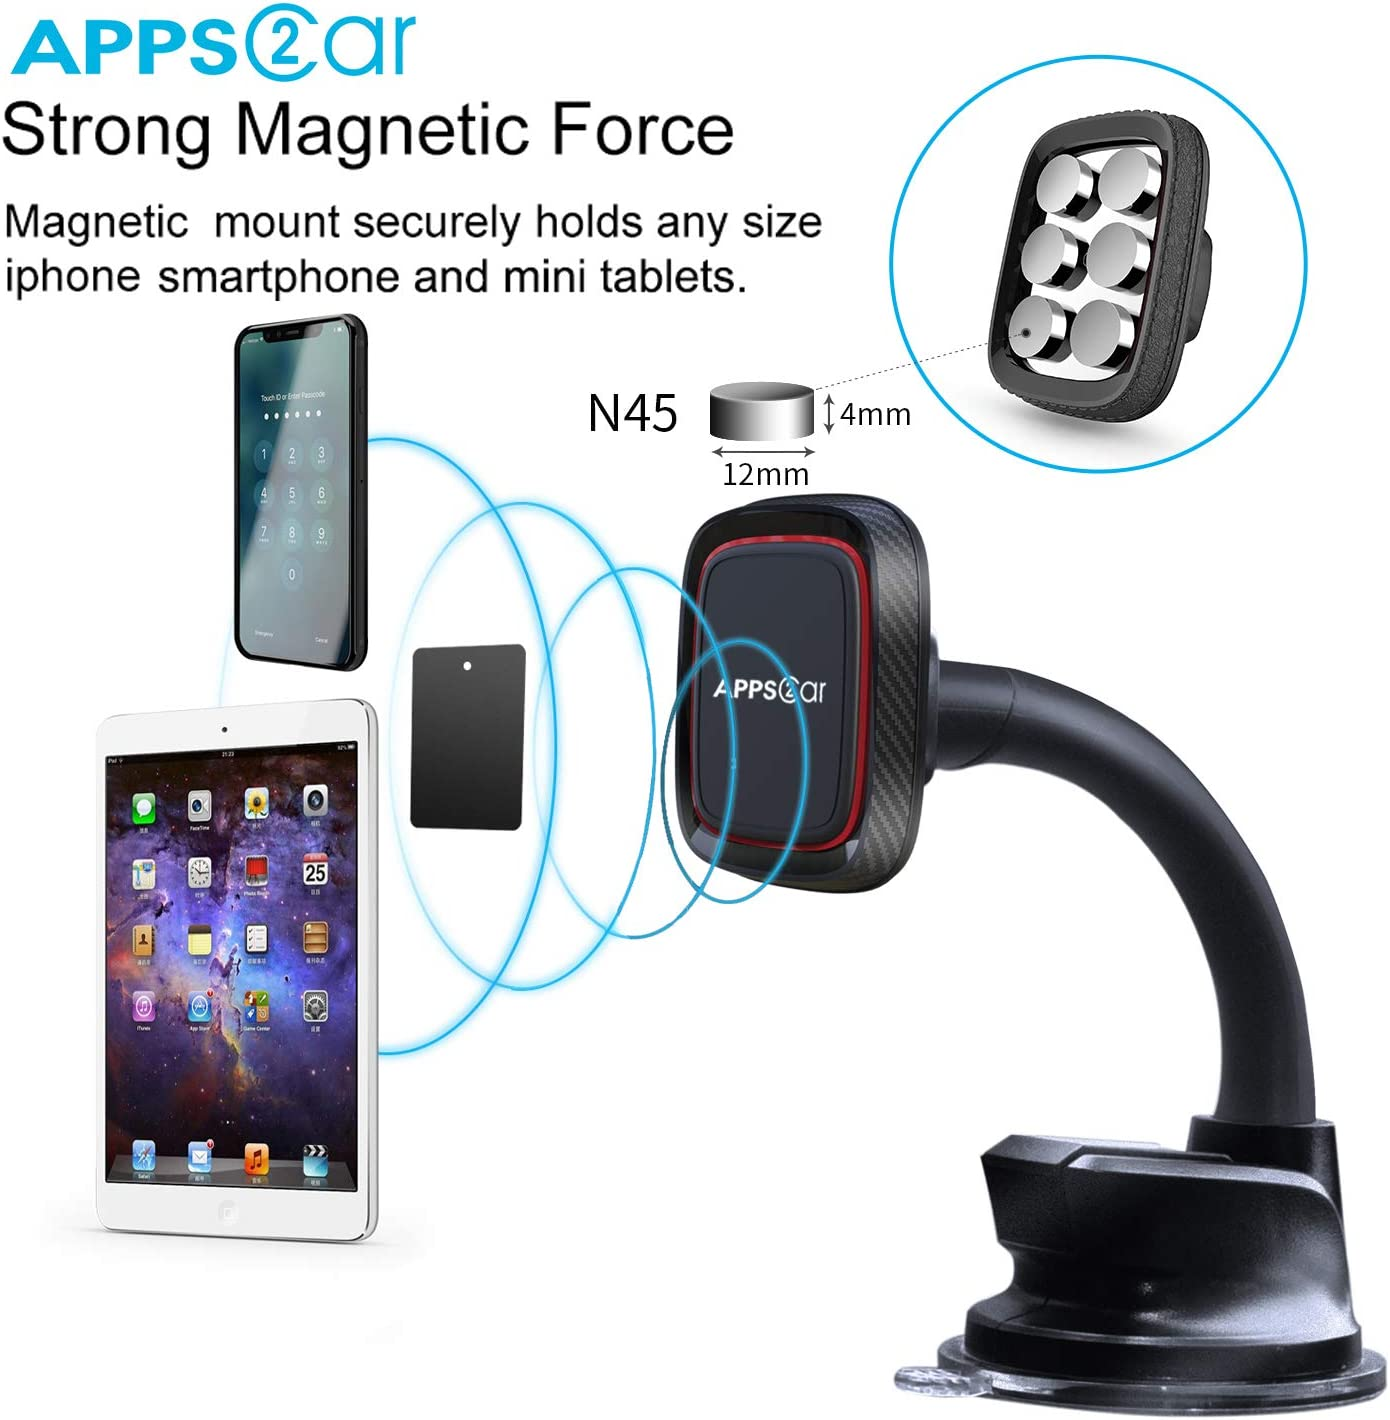 Com//W Larger and Heavy Devices Magnetic Phone Car Mount APPS2Car XL Universal Dashboard /& Windshield Car Phone Mount with 6 Strong Magnet,Phone Holder for Car with Strong Suction Cup